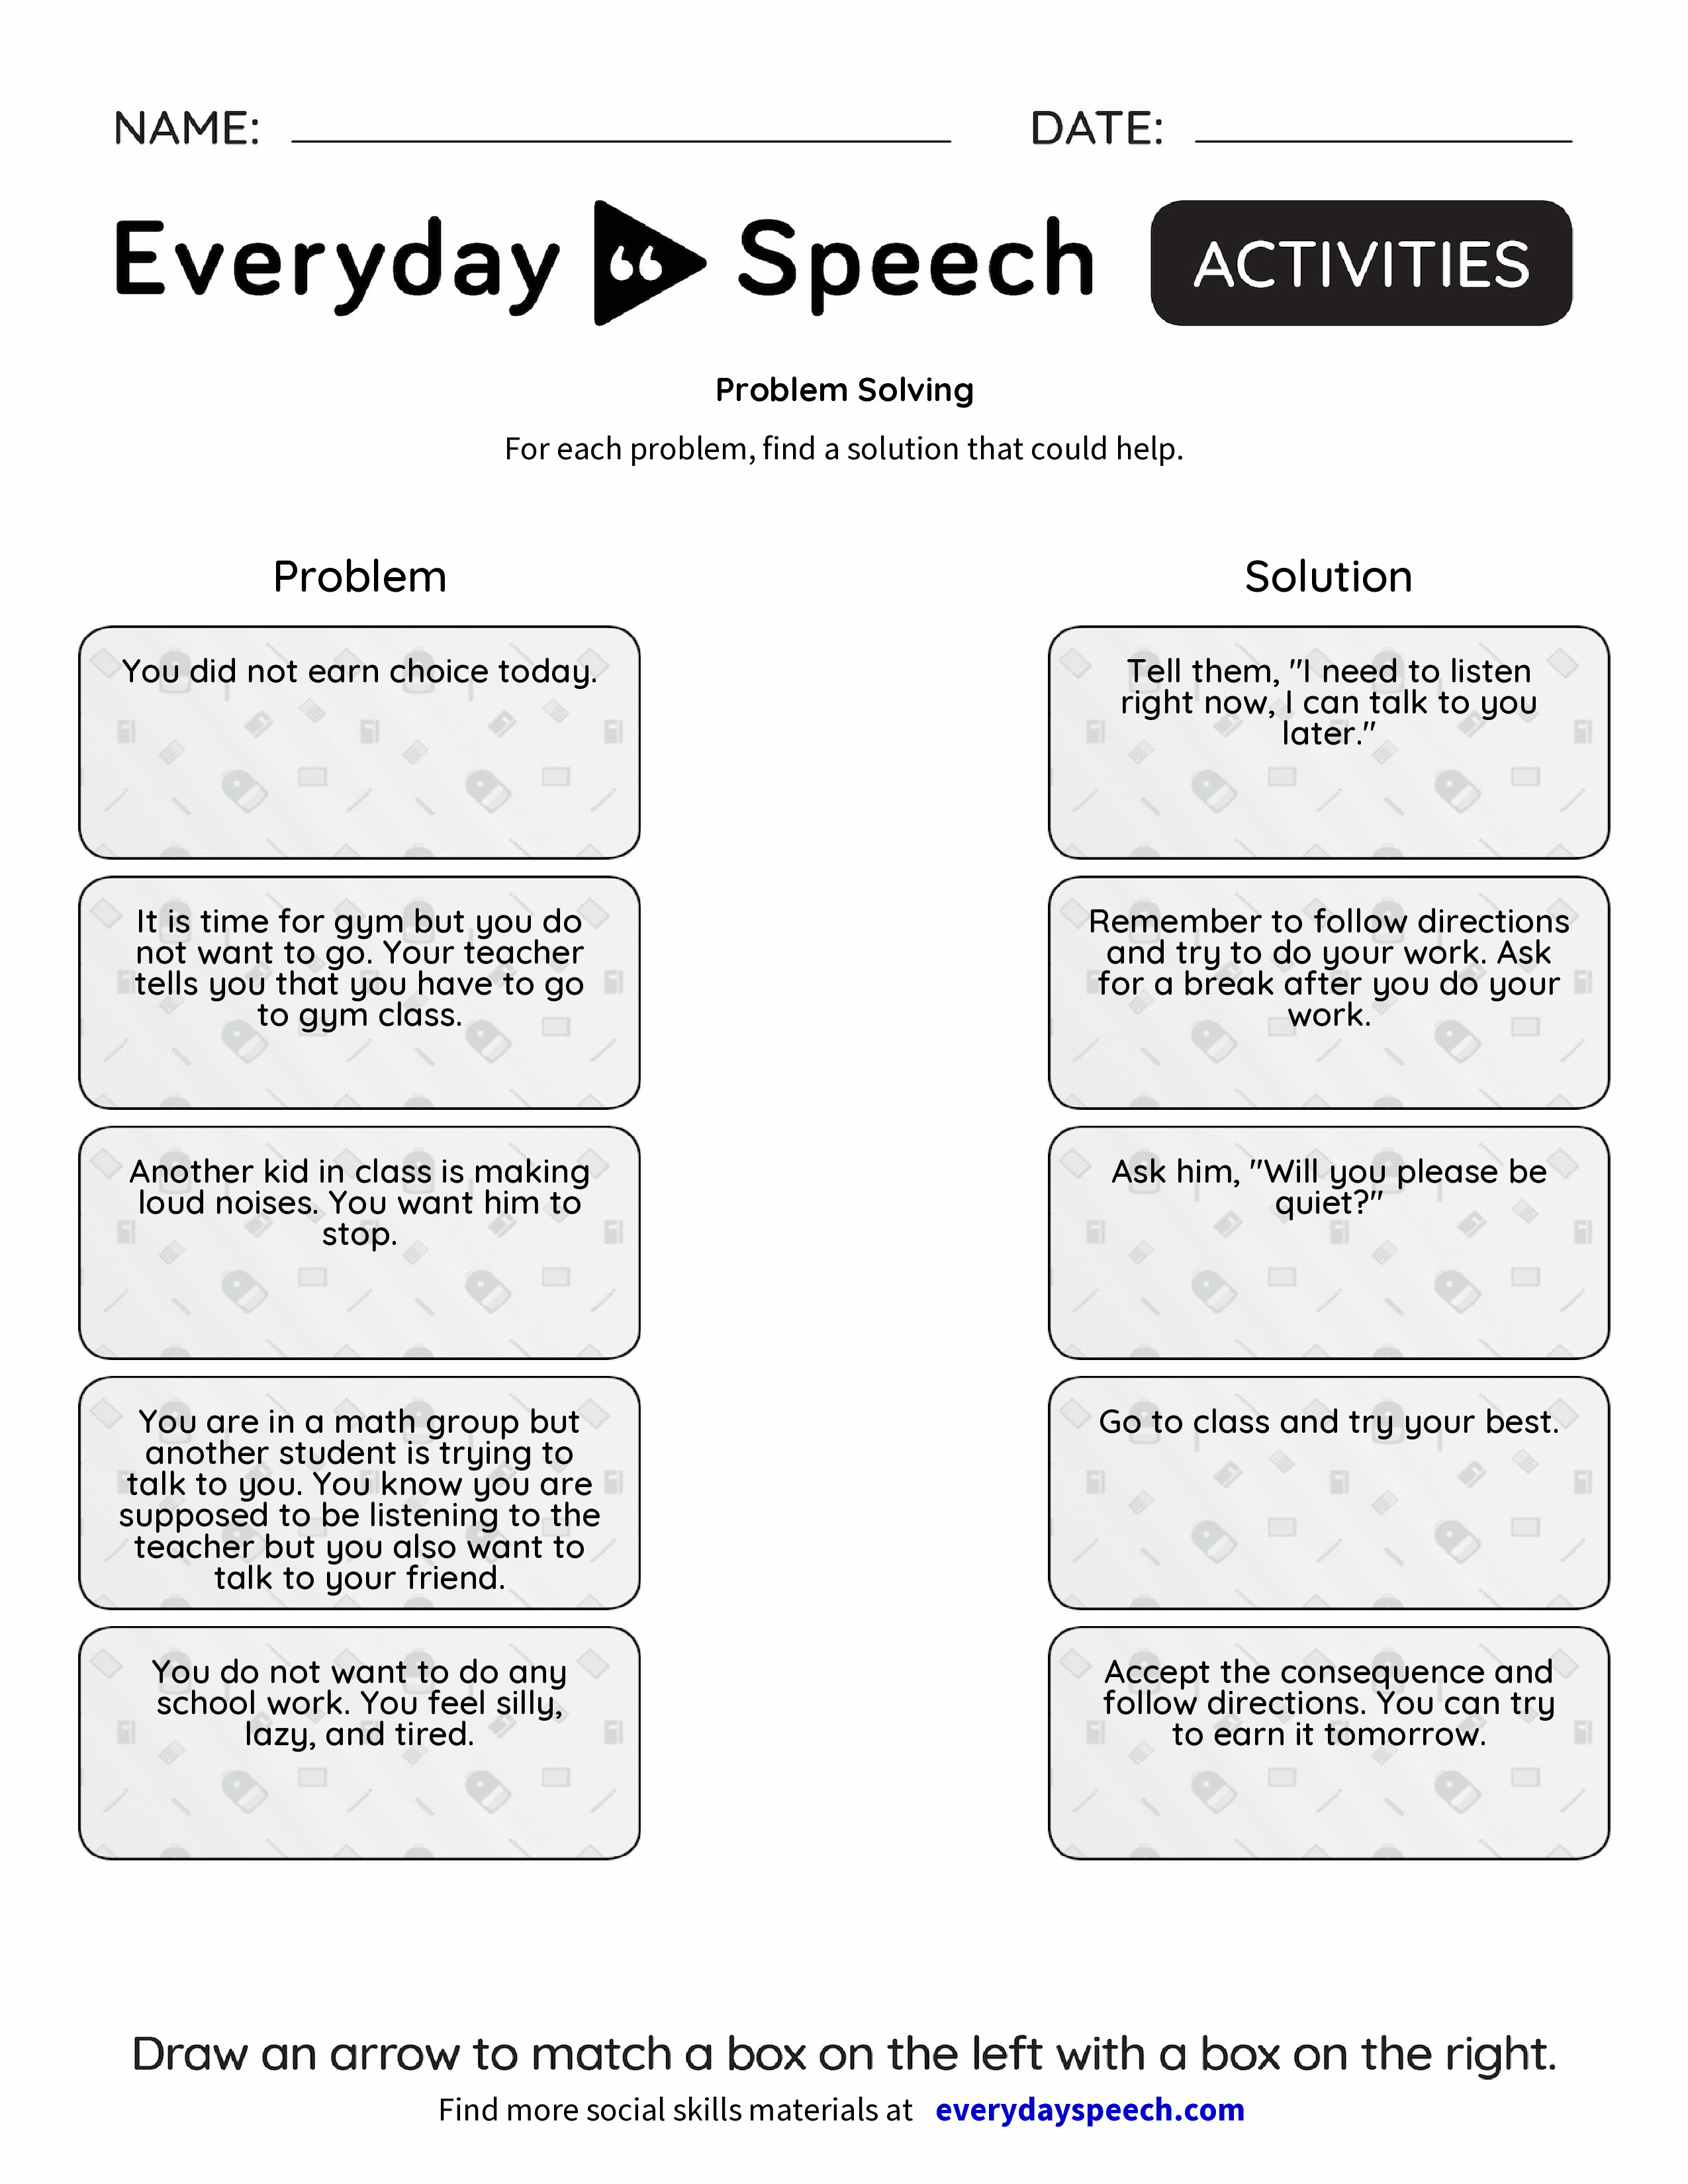 worksheet Problem Solving Life Skills Worksheets problem solving everyday speech preview preview